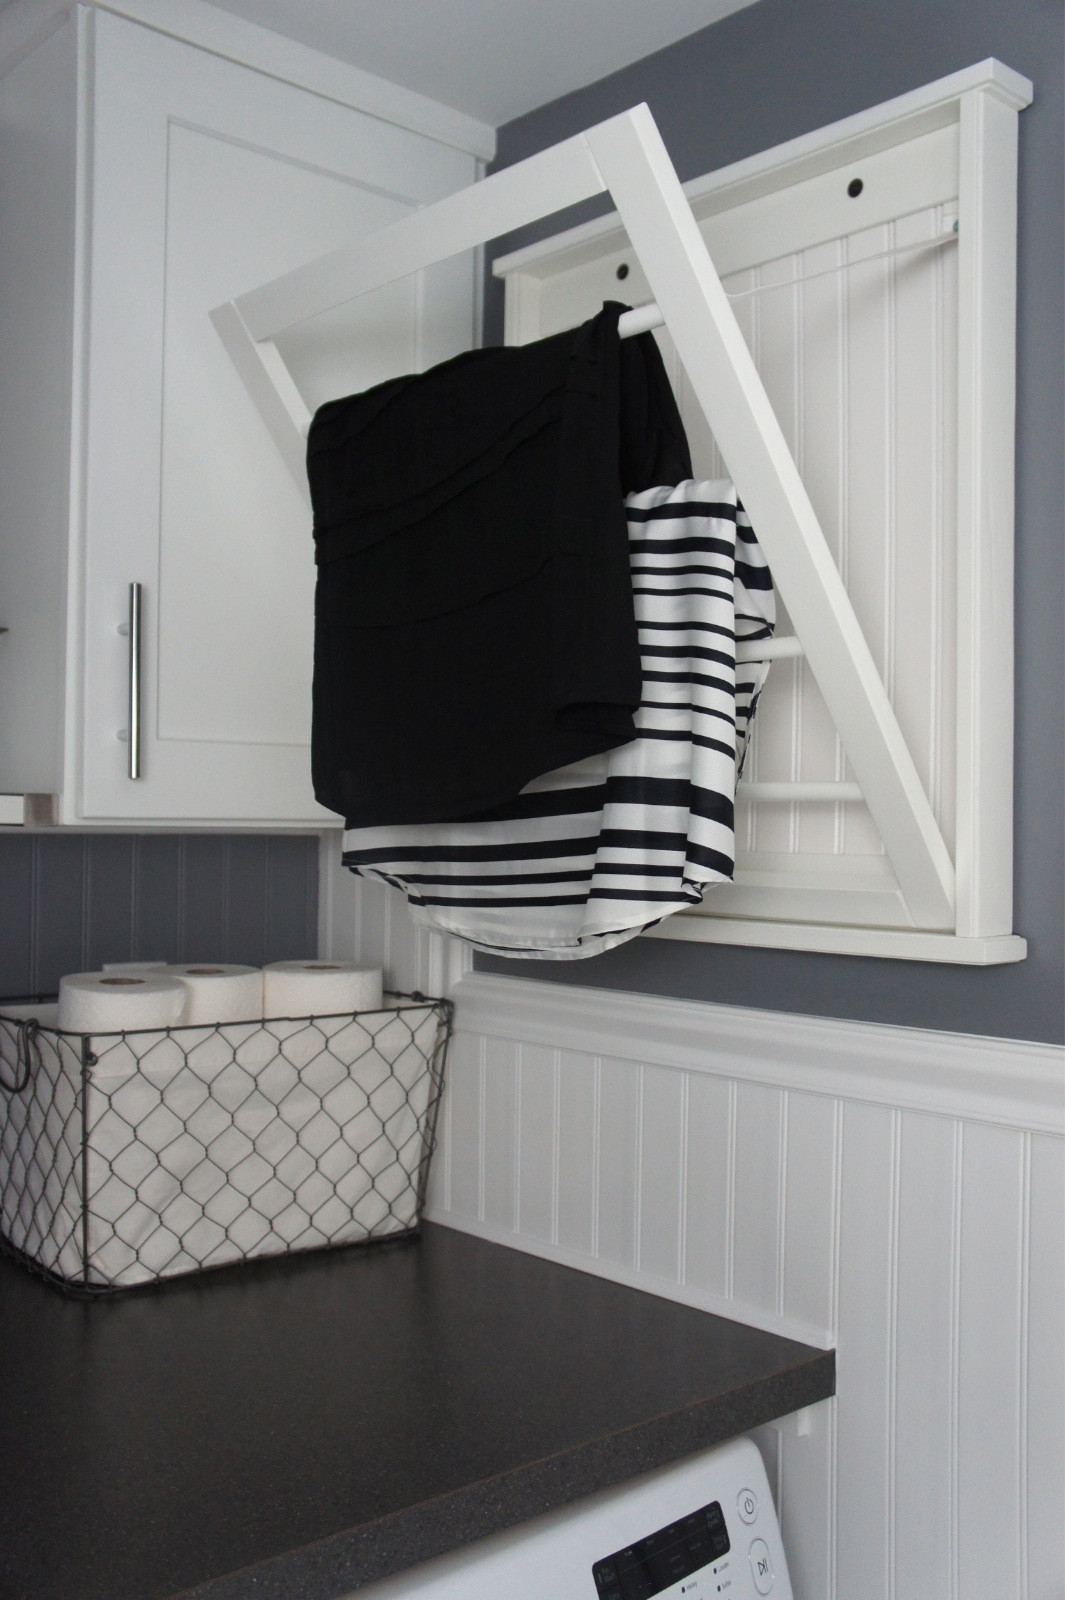 Best ideas about Laundry Room Drying Rack . Save or Pin Home with Baxter House Tour Week 5 Half Bath Laundry Now.